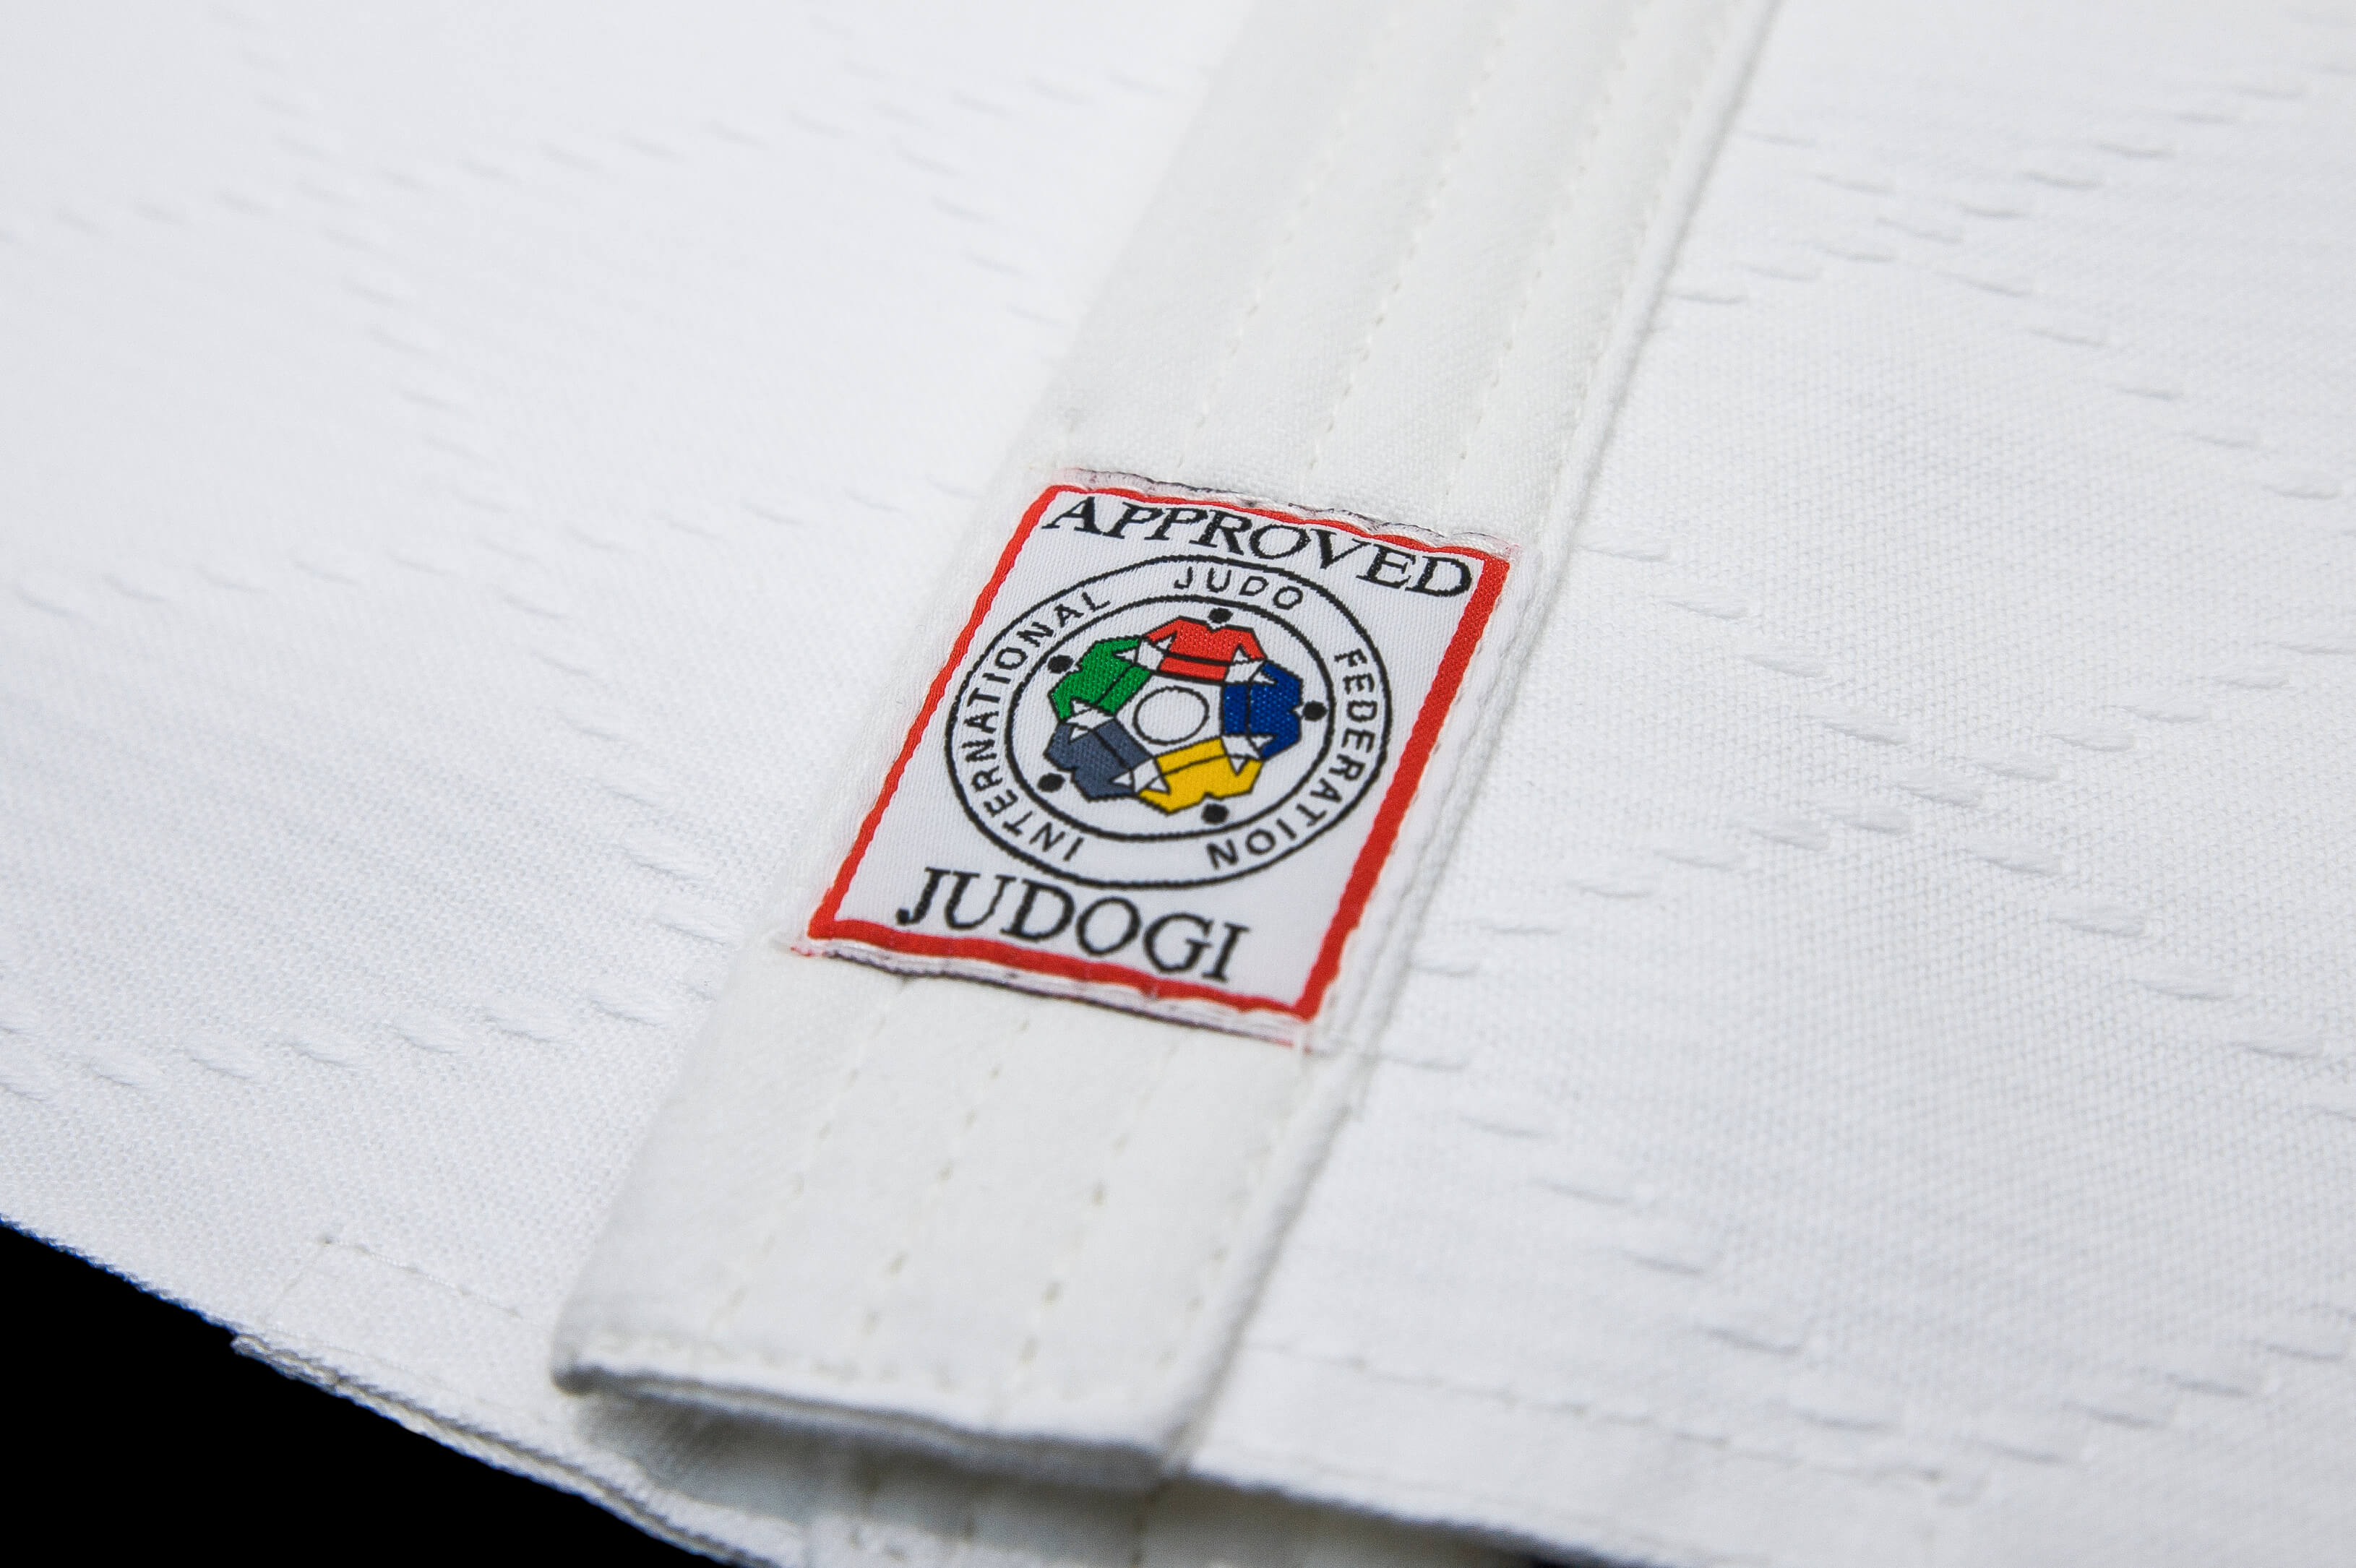 Mandatory red label on a white Judogi